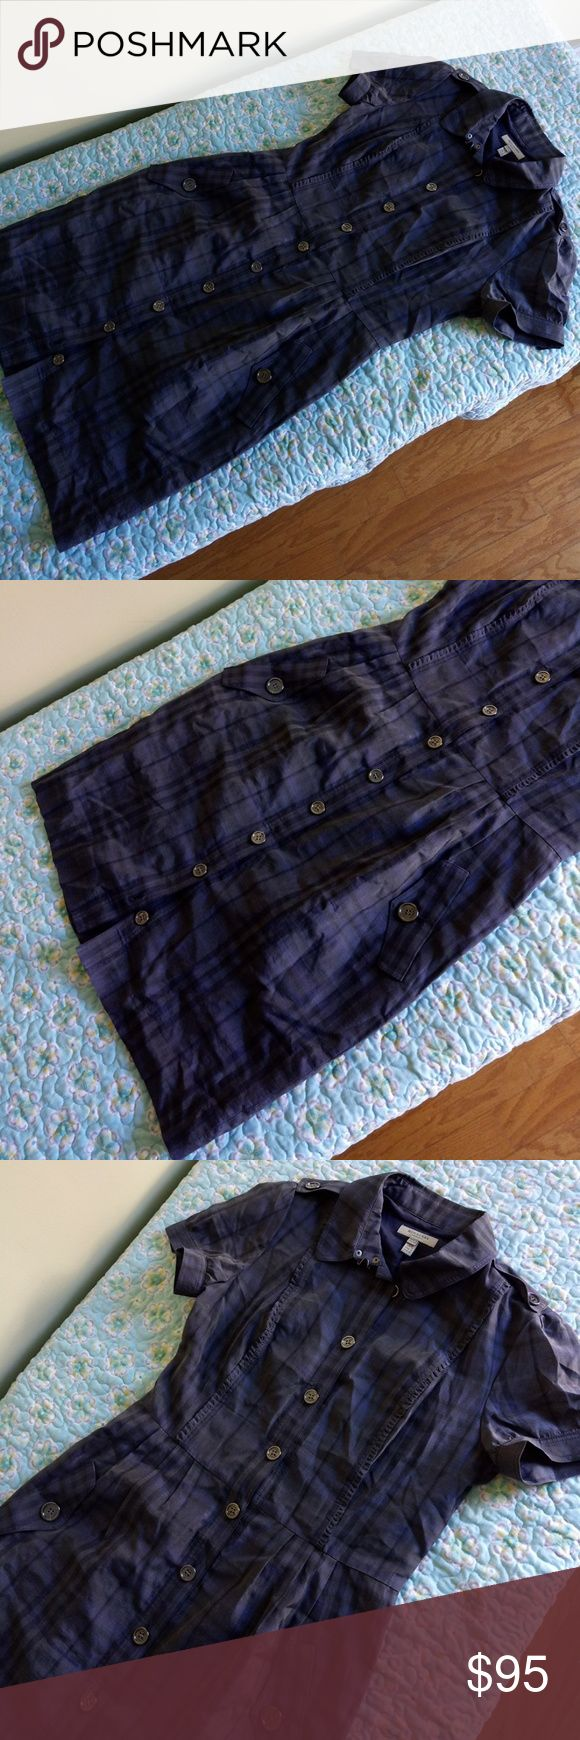 AUTHENTIC Burberry dress Very good condition missing belt... But perfect with any black one Burberry Dresses Midi